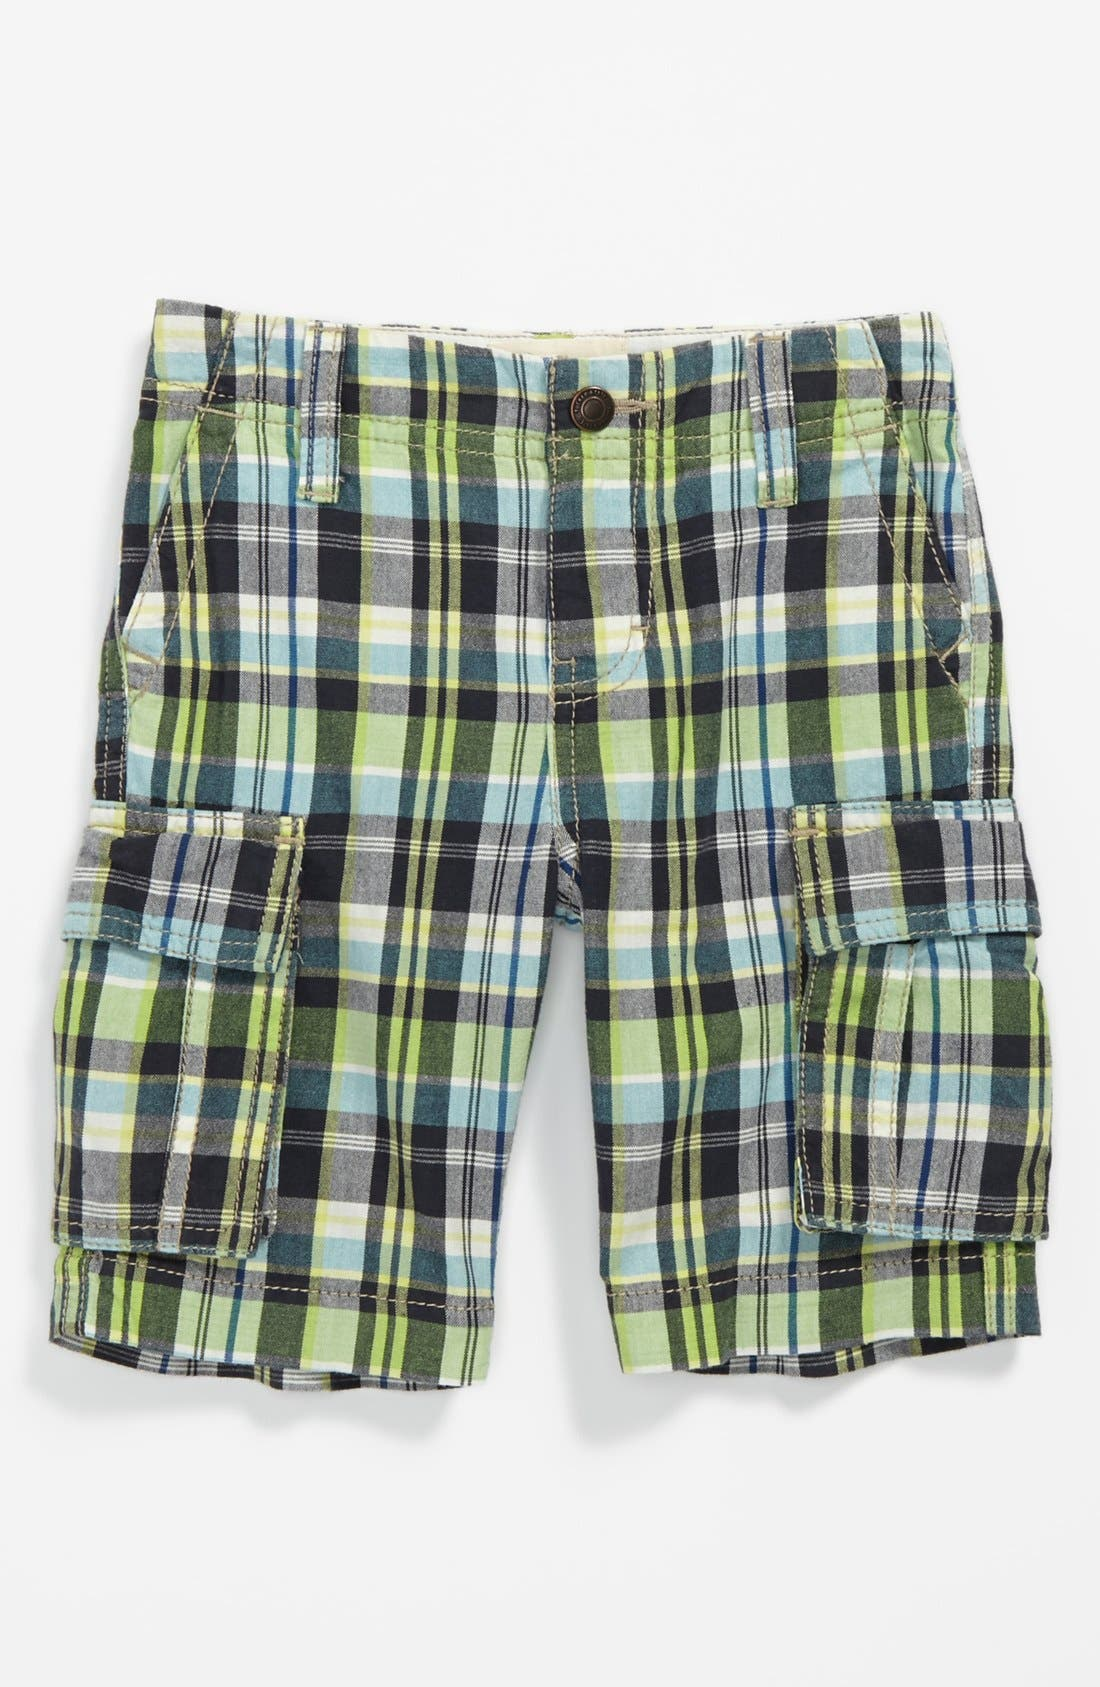 Alternate Image 1 Selected - Tucker + Tate Cargo Shorts (Toddler Boys)